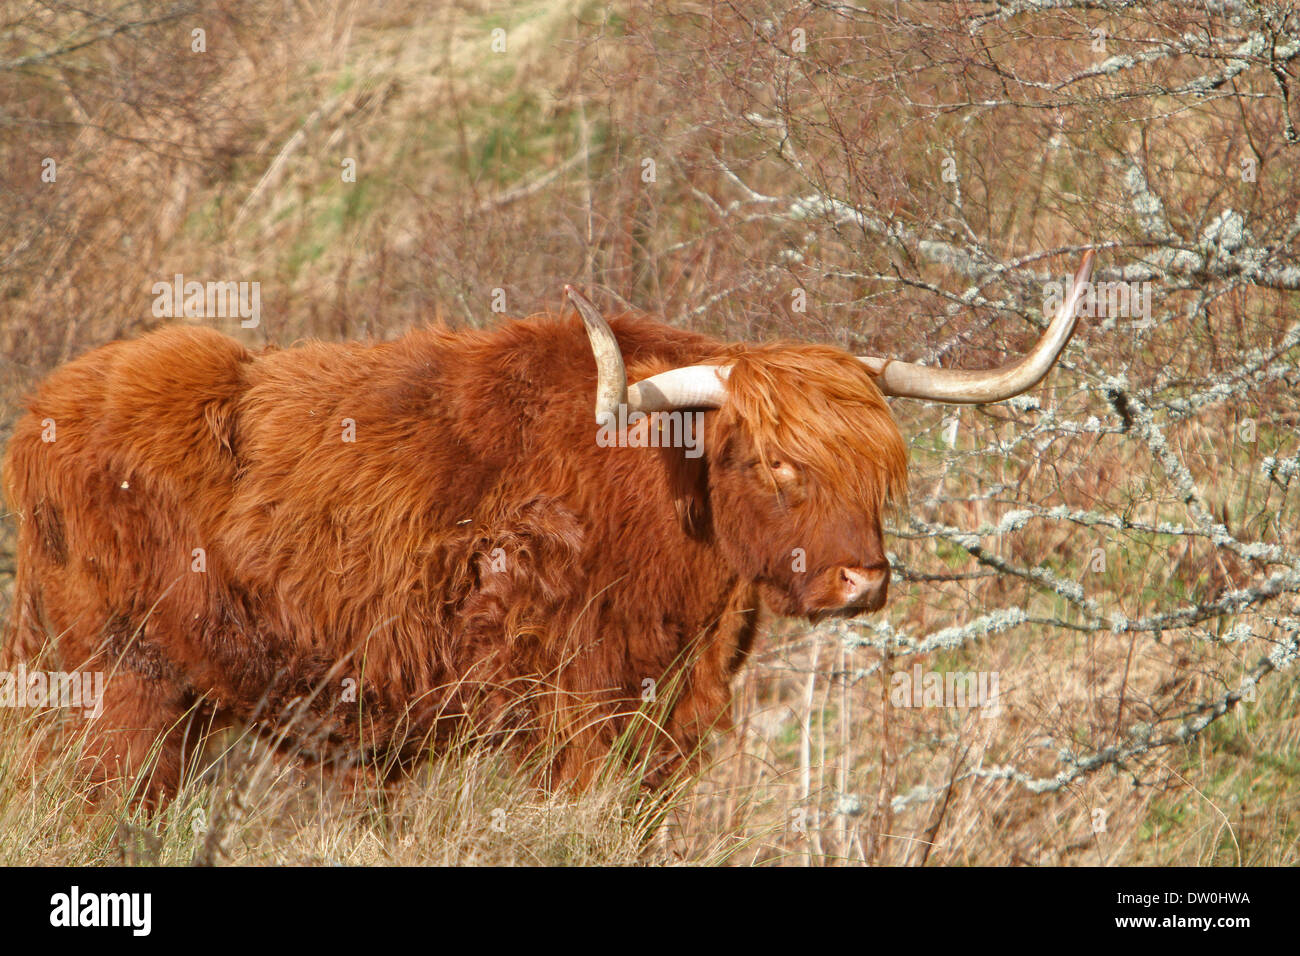 Carrbridge,uk,25th February 2014,Highland cattle grazing in the sunshine ©Keith Larby Stock Photo